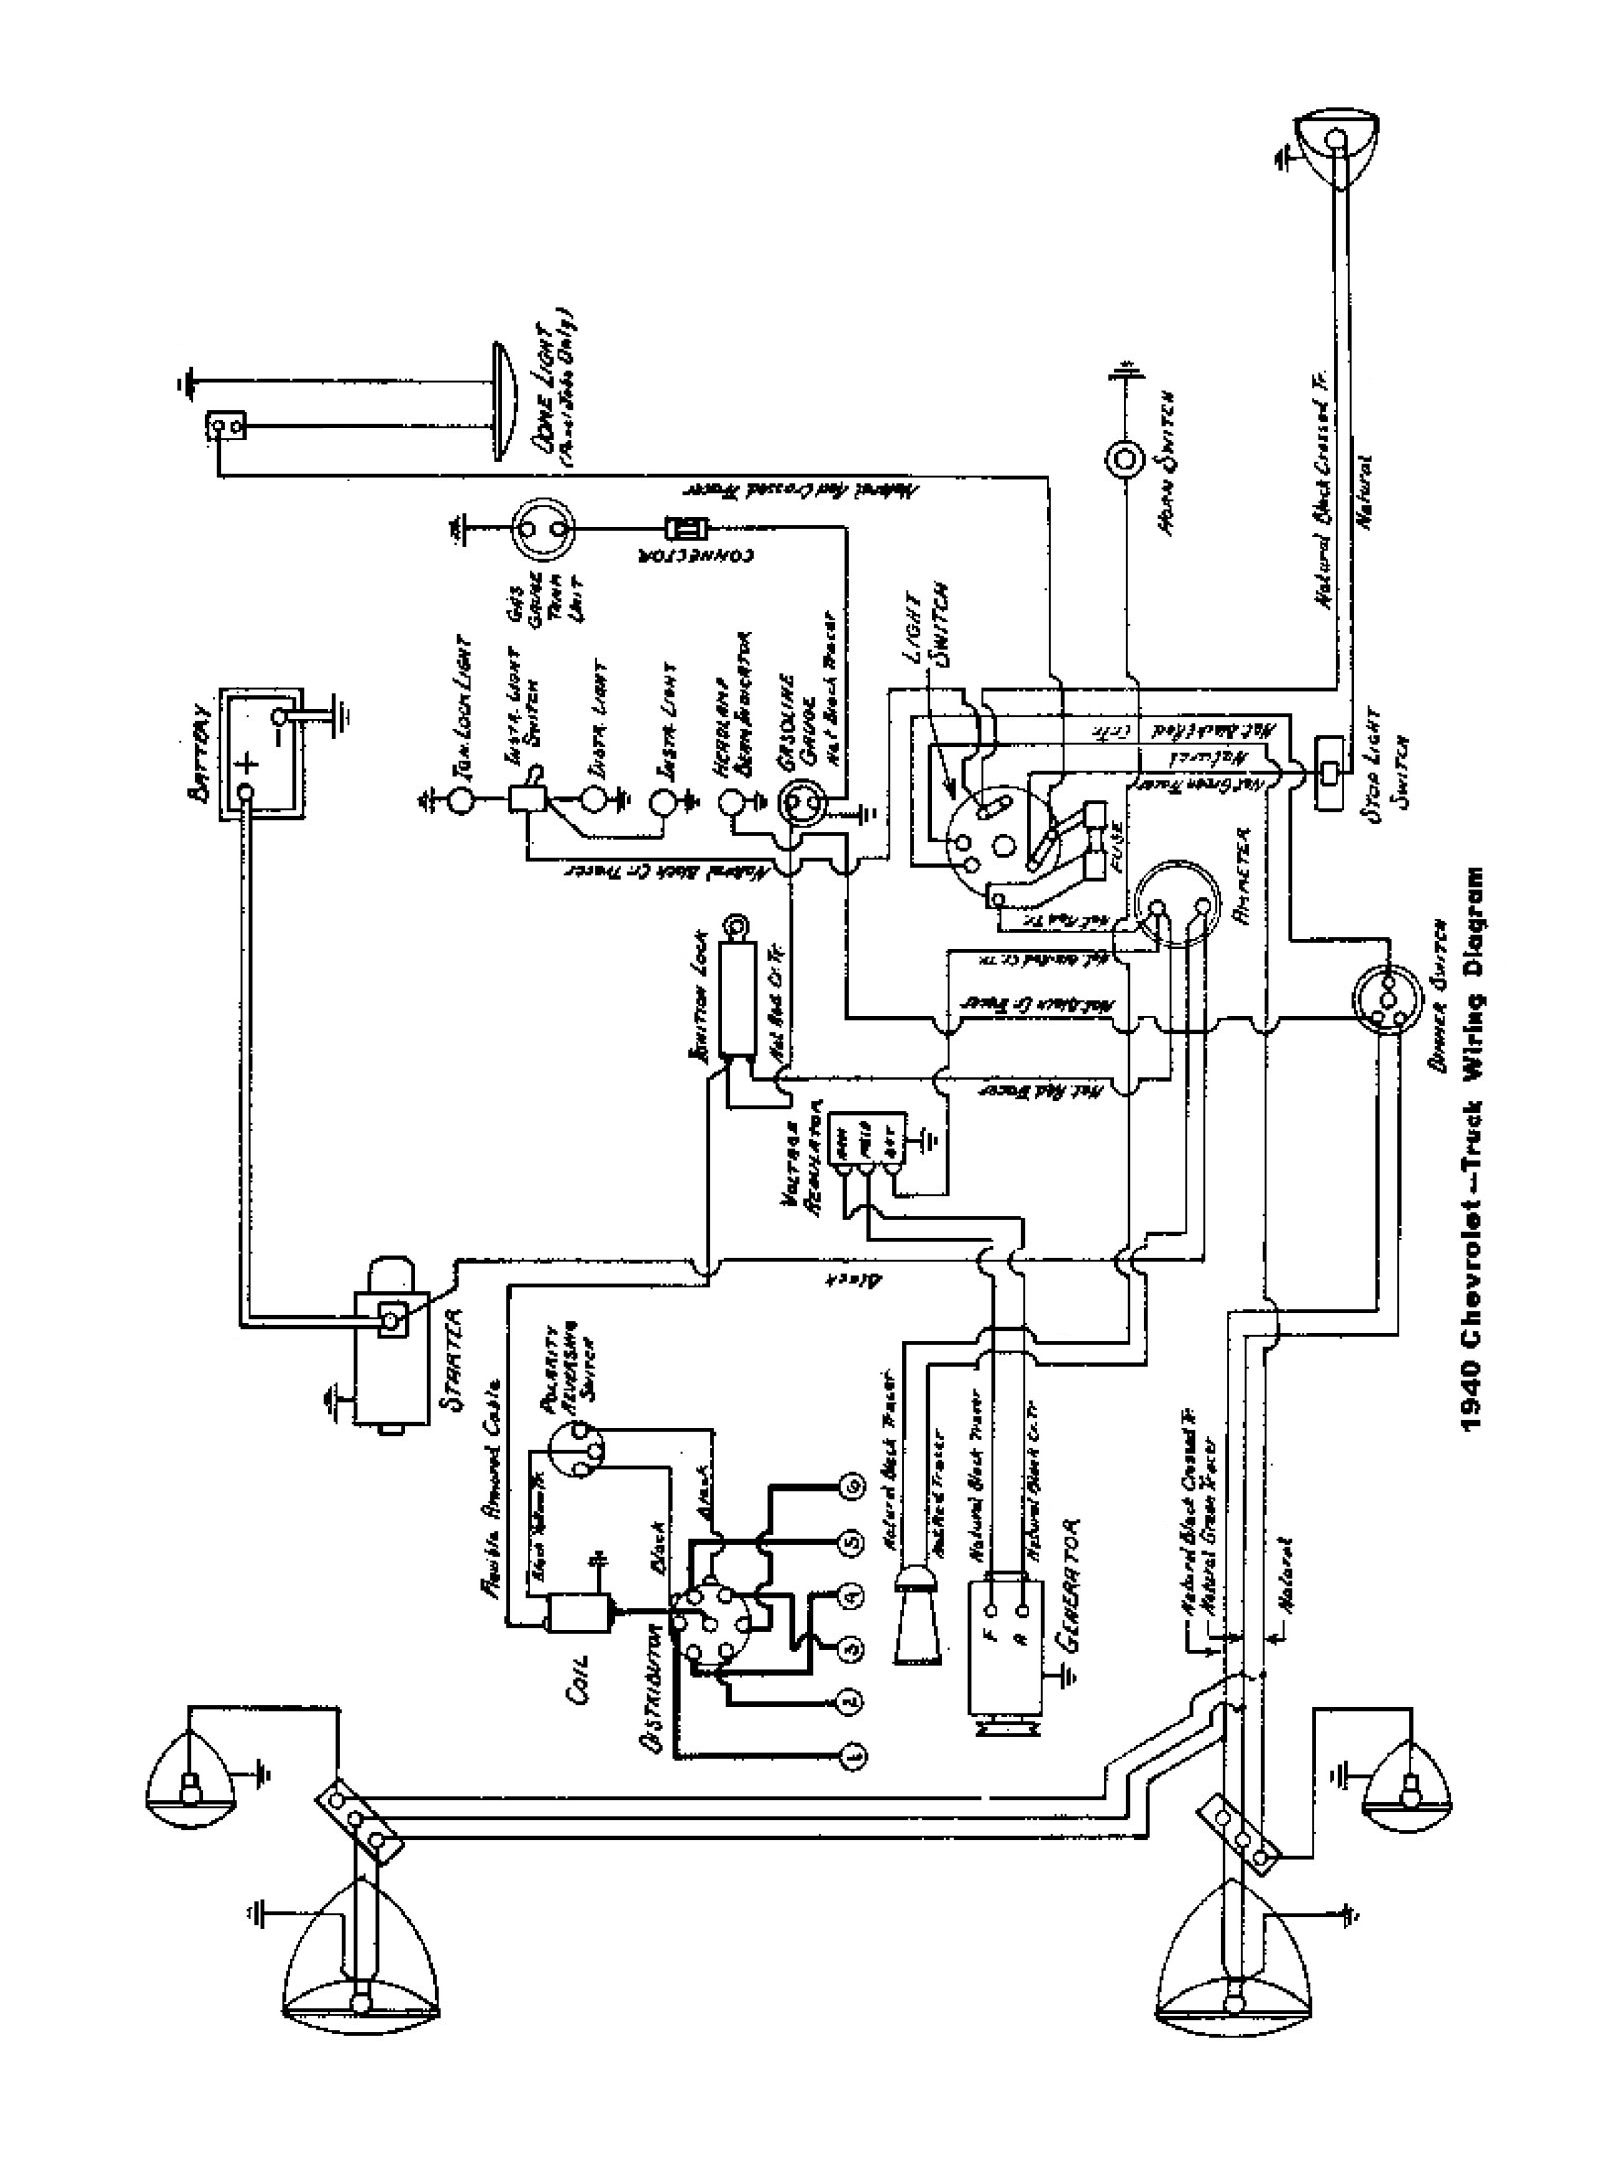 1956 Chevy Radio Wiring Diagram Opinions About Wiring Diagram \u2022 1966 Corvette  Fuse Box Diagram 1956 Corvette Fuse Box Diagram